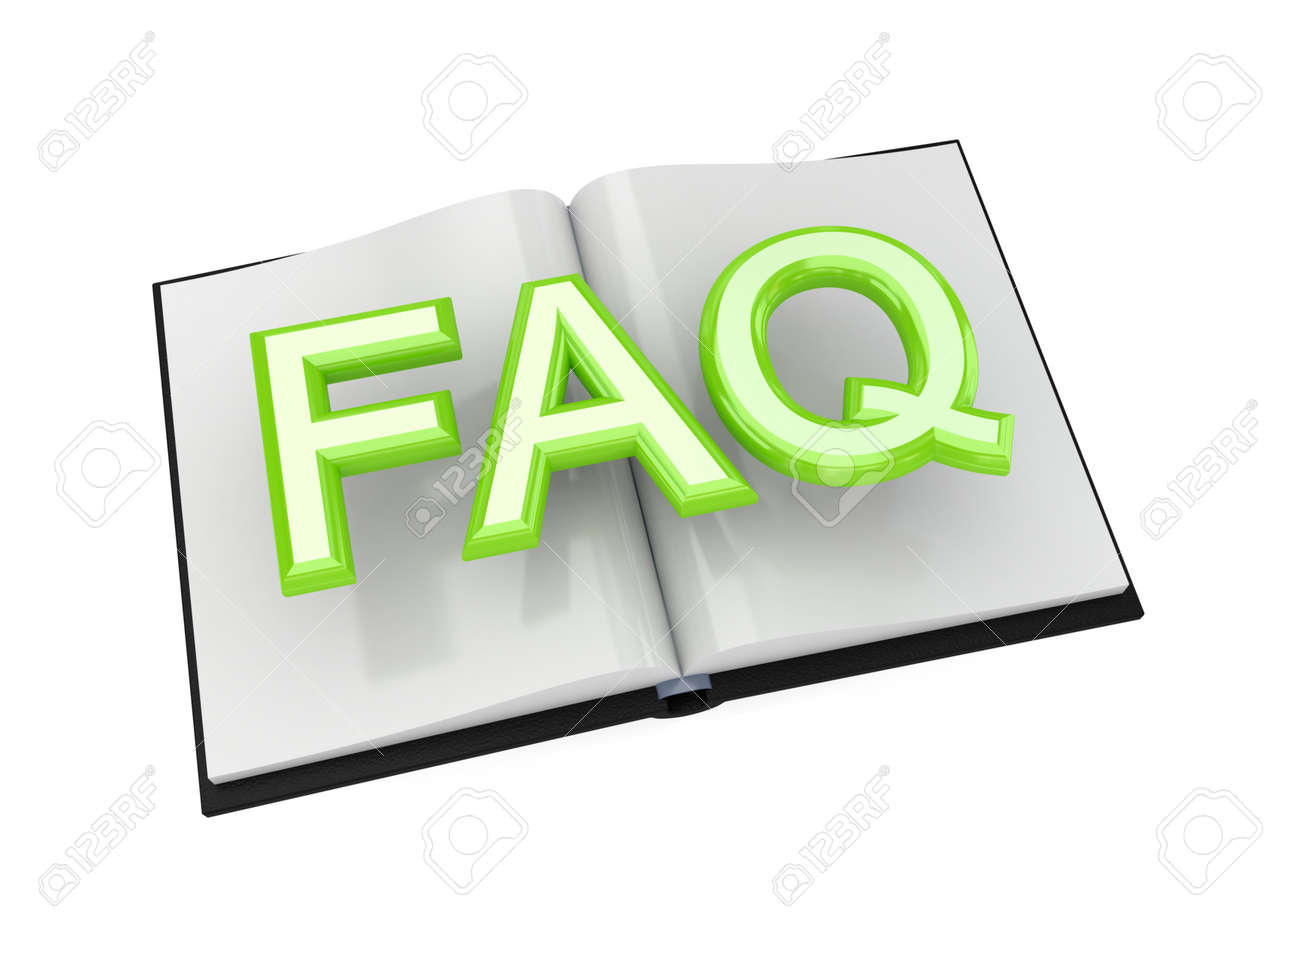 FAQ symbol. 3d rendered.Isolated on white background. Stock Photo - 12171032